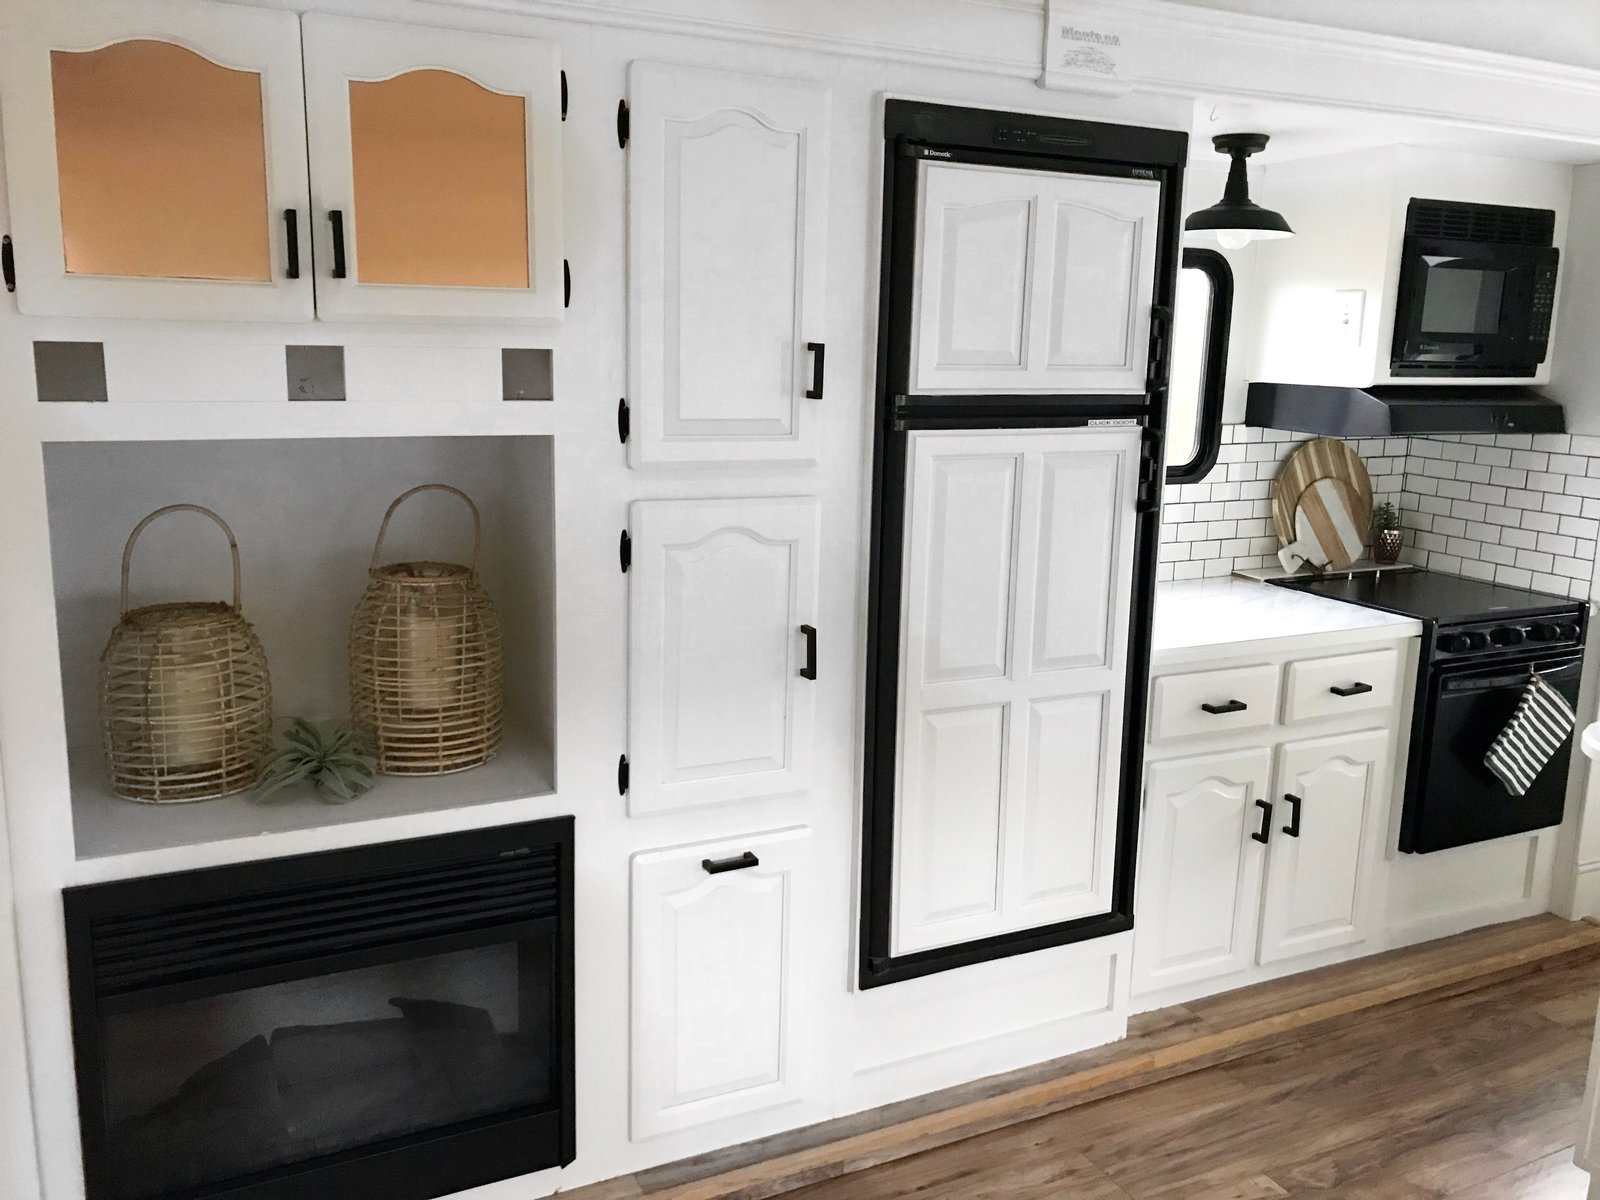 Kitchen, Medium Hardwood Floor, Cooktops, Subway Tile Backsplashe, Microwave, Wall Oven, and White Cabinet The kitchen has a fireplace, oven, microwave, electric cooktop and plenty of discreet storage.  Photo 10 of 16 in Hit the Road With This Chic Camper on Sale For $28K